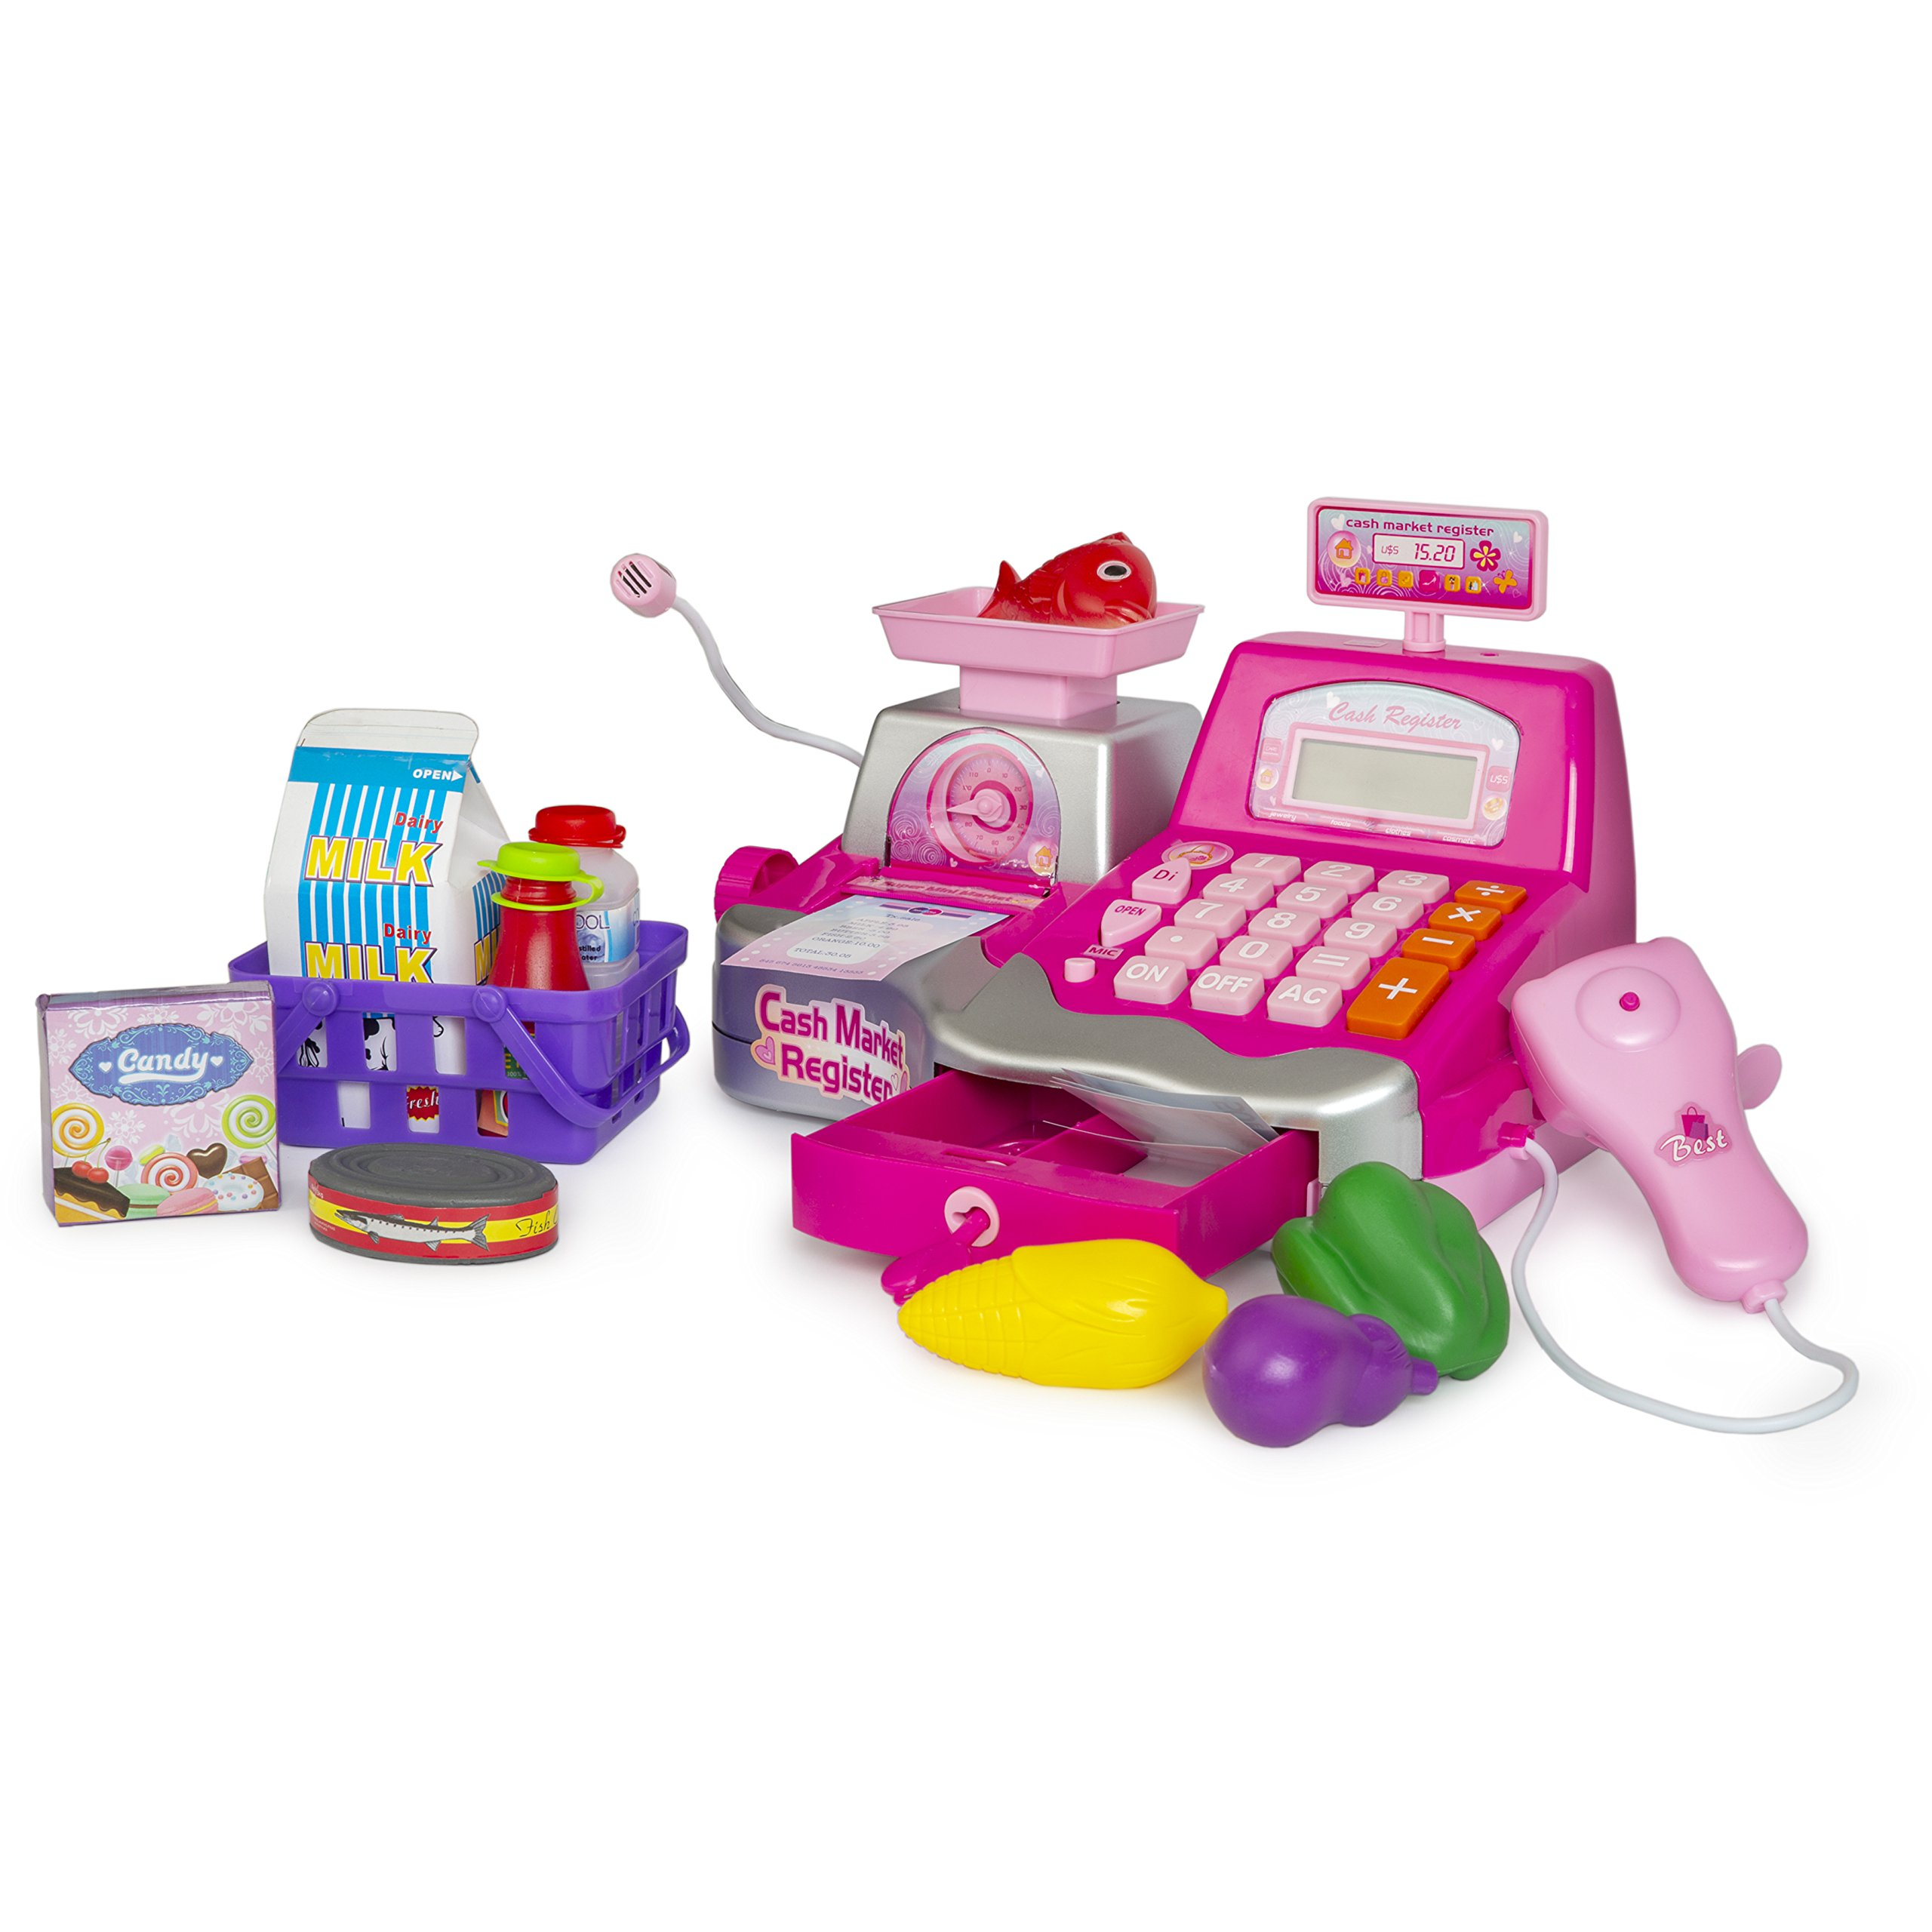 Pretend Play Cash Register 23 pieces with Money, Food, Microphone, Scanner, Calculator for Kids to Understand, Learn the Value of Money and Build Entrepreneurial skills